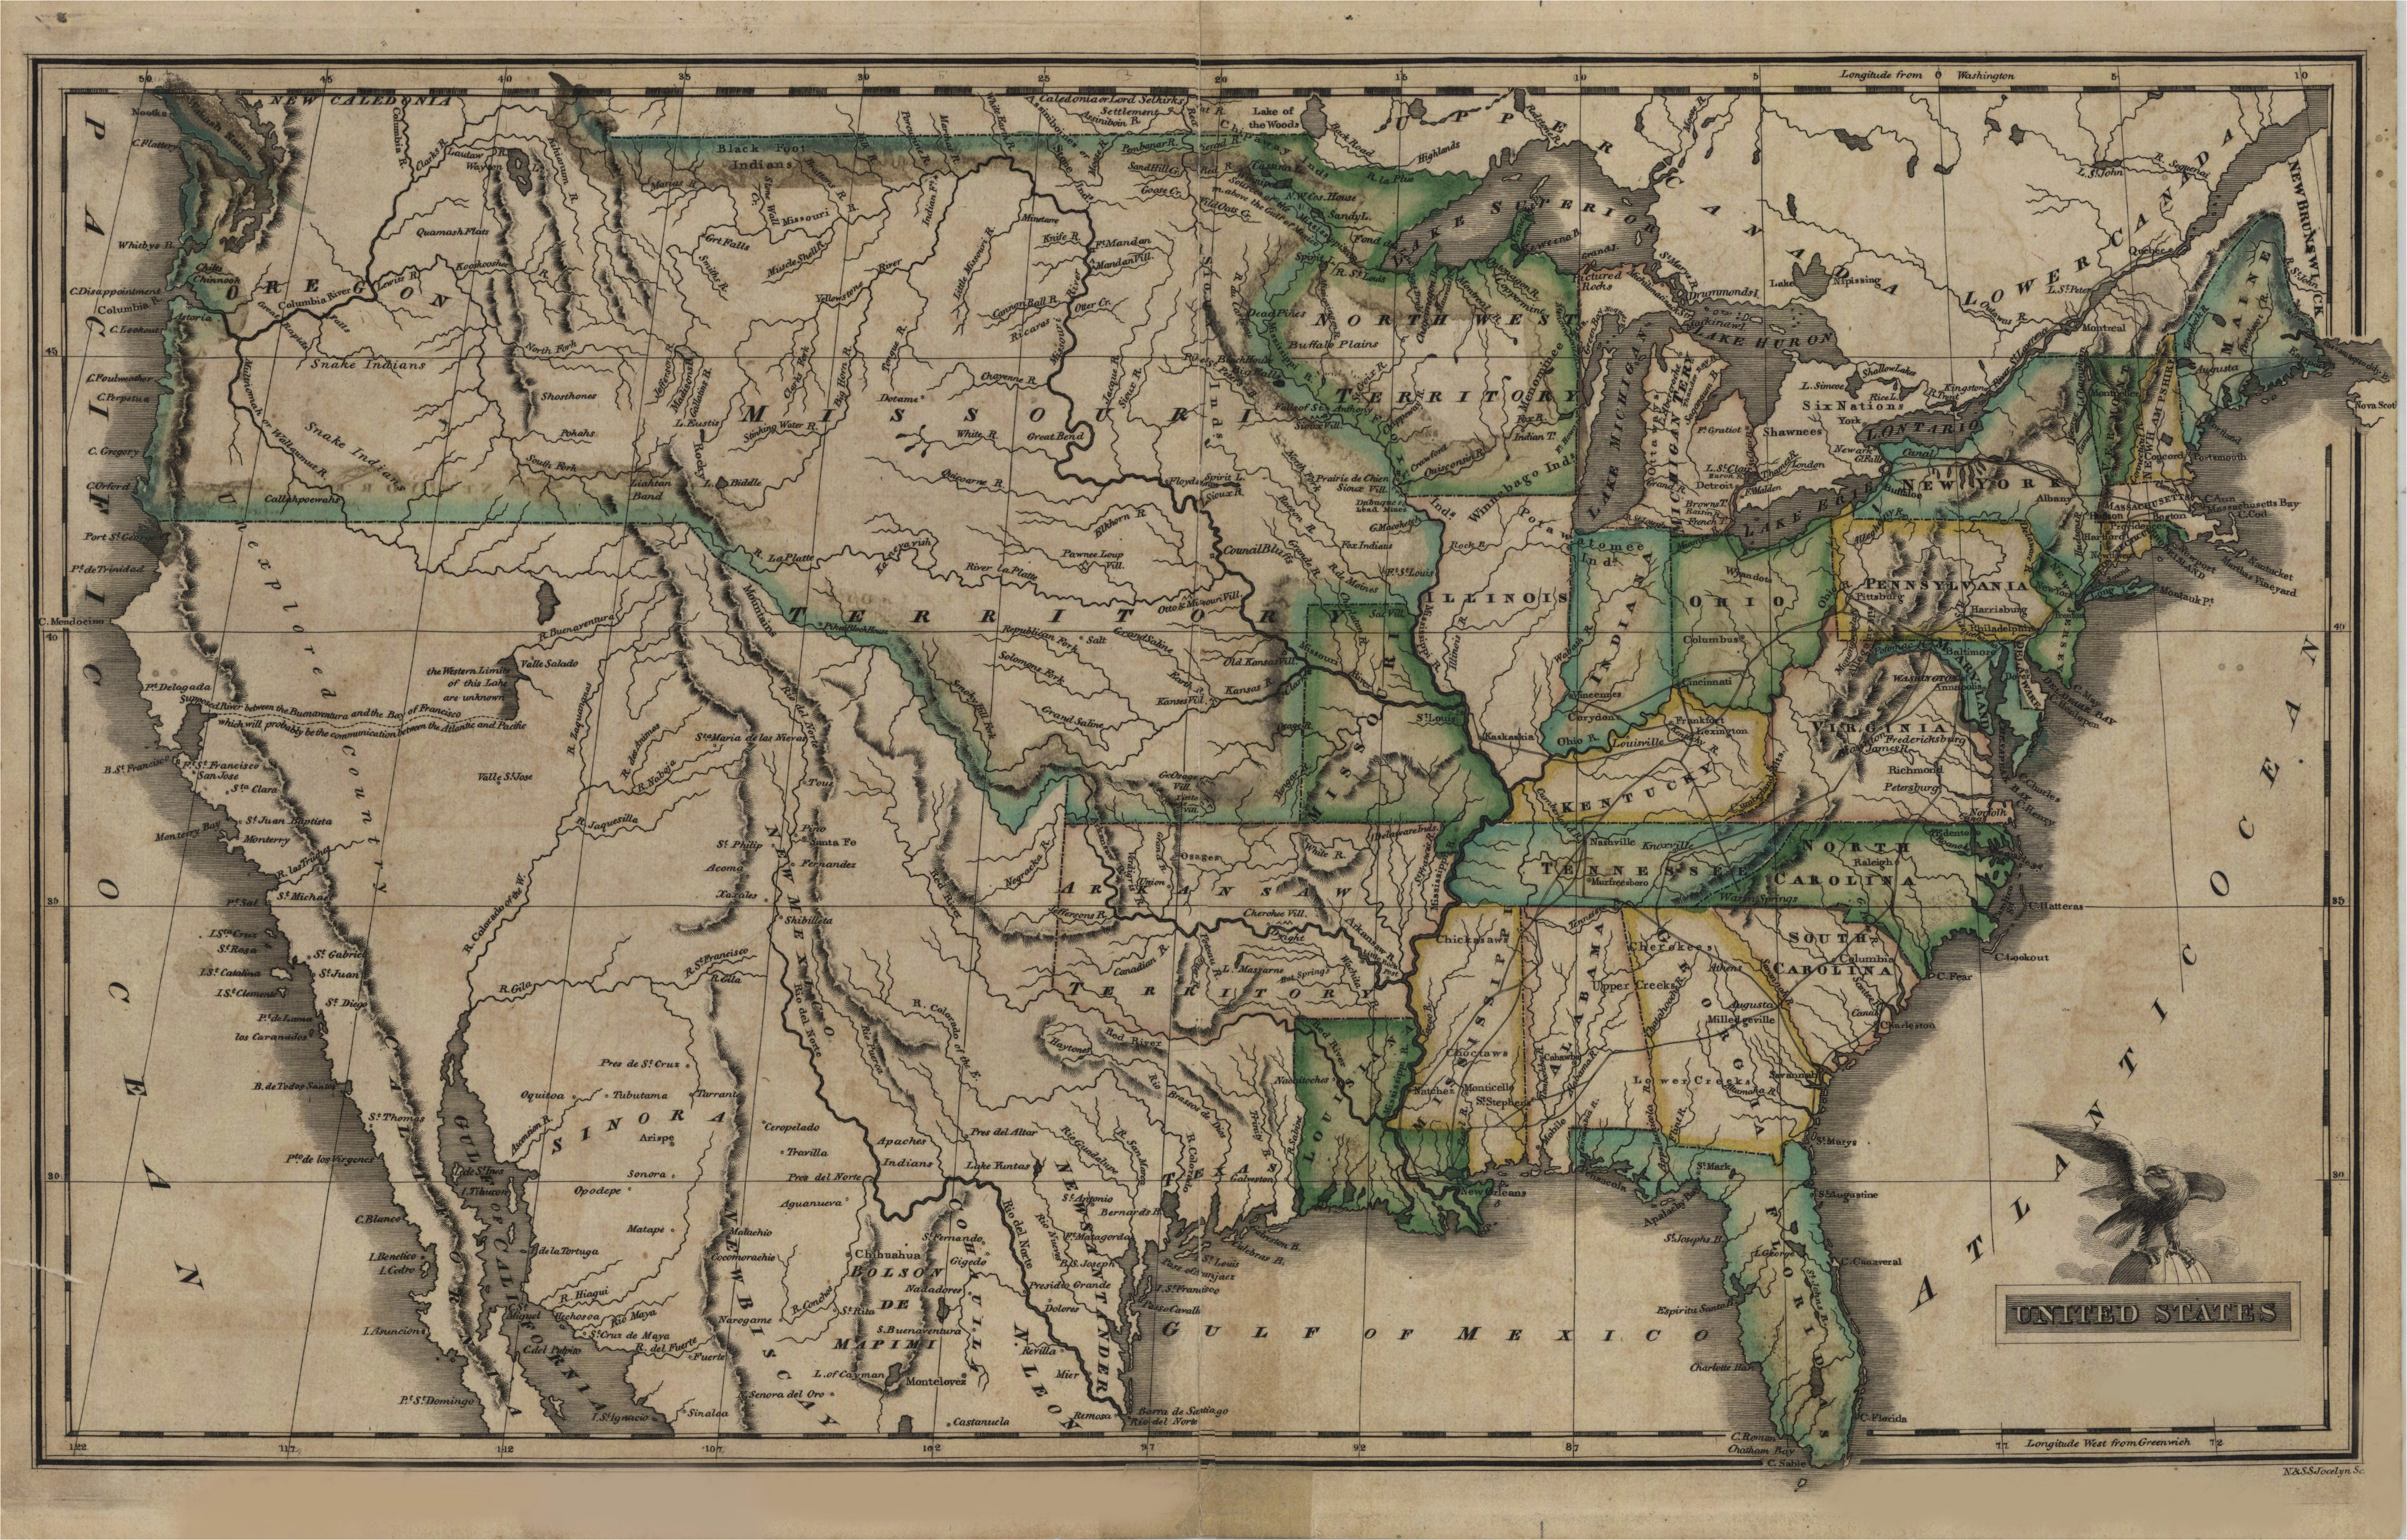 Old Maps Of Colorado File Map Of the United States 1823 Jpg ... Images Of Old Maps The United States on old maps of greenland, old maps of nepal, old maps of the bahamas, old maps of the netherlands, old maps of slovakia, old maps of the midwest, old maps of the southwest, old maps of bolivia, old maps of albania, old us map, antique map united states, old maps of the american revolution, old maps of latin america, vintage wall map united states, old maps of the east coast, old maps of azerbaijan, old maps of guam, old maps of the americas, native american tribes map united states, old united states of america,